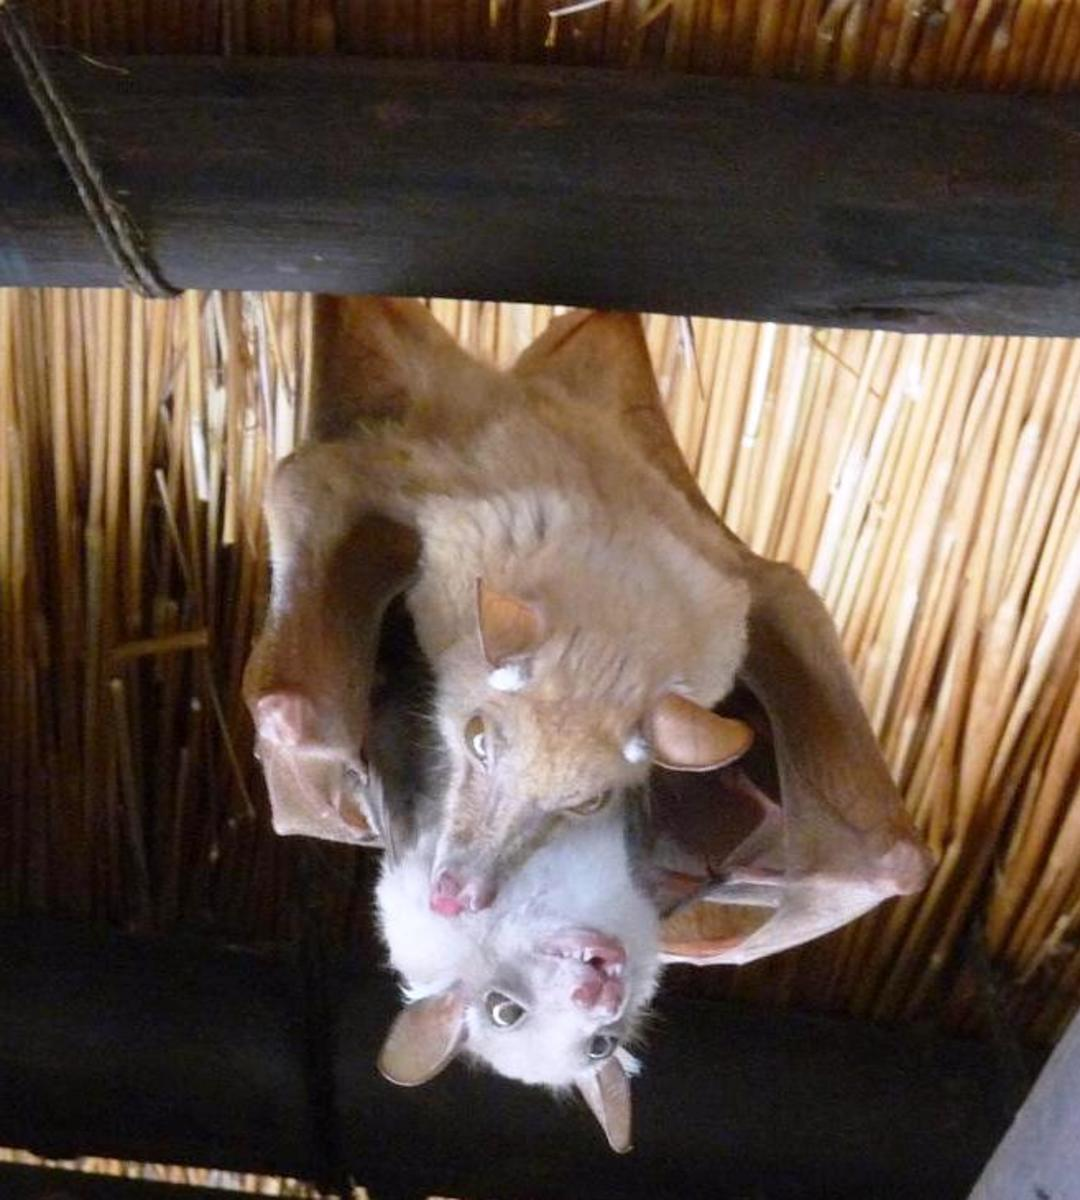 Most bats mate, give birth, and sleep in an upside down position.  If a bat dies while it is roosting, it will remain upside down until something knocks it loose.